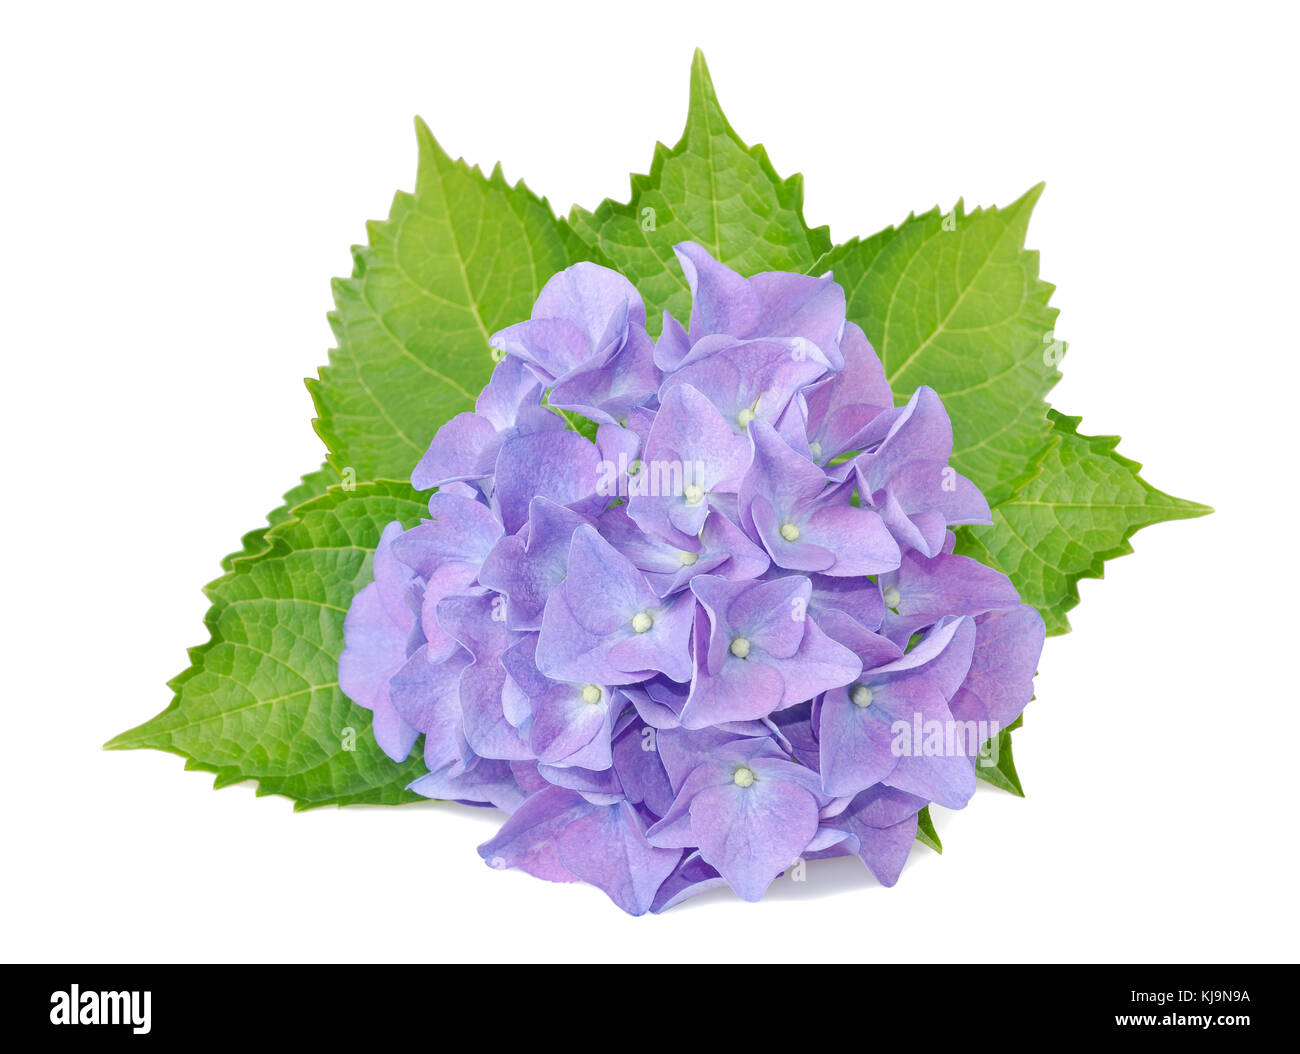 hydrangea flowers and leaves isolated on white - Stock Image